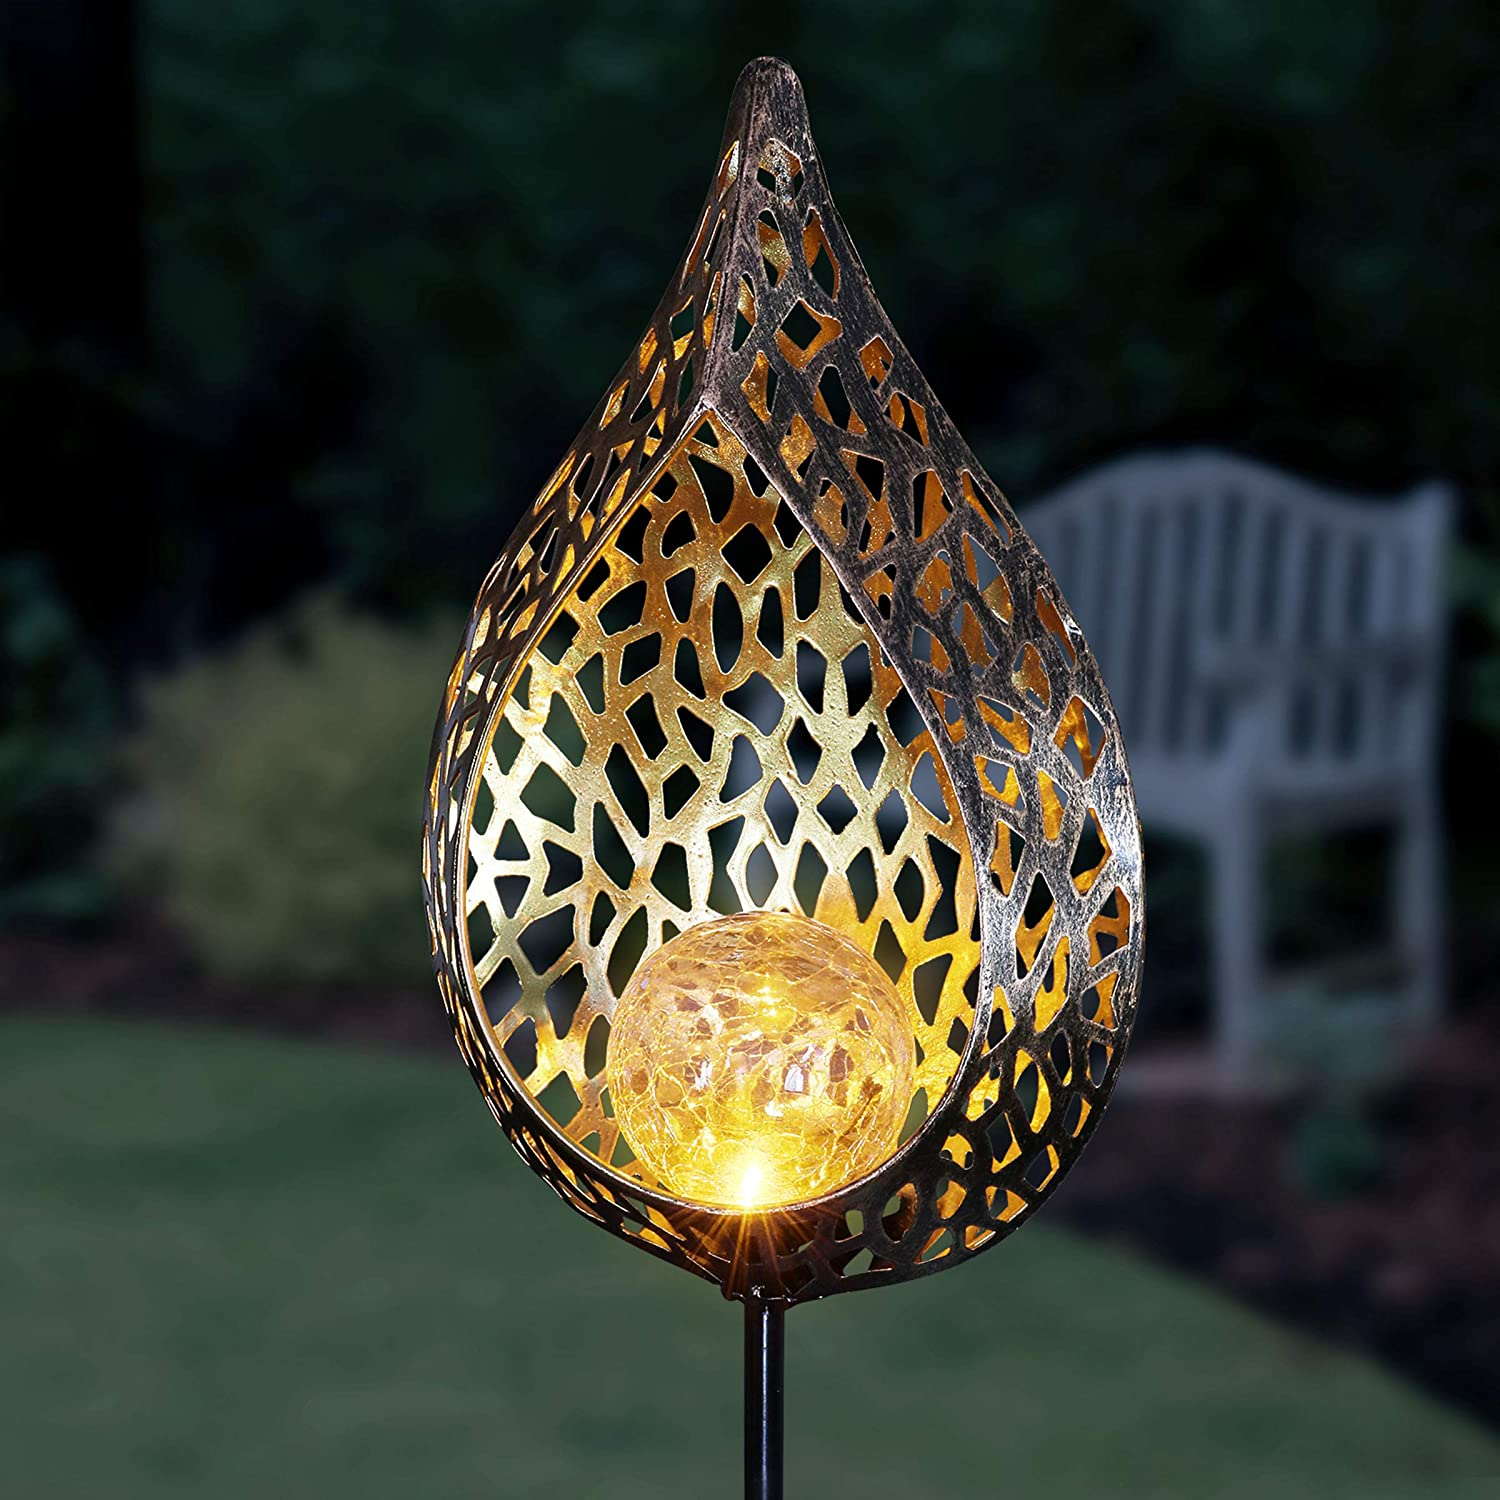 Exhart Solar Metal Filigree Full Flame Torch Garden Stake, 6.5 by 35.5 Inches